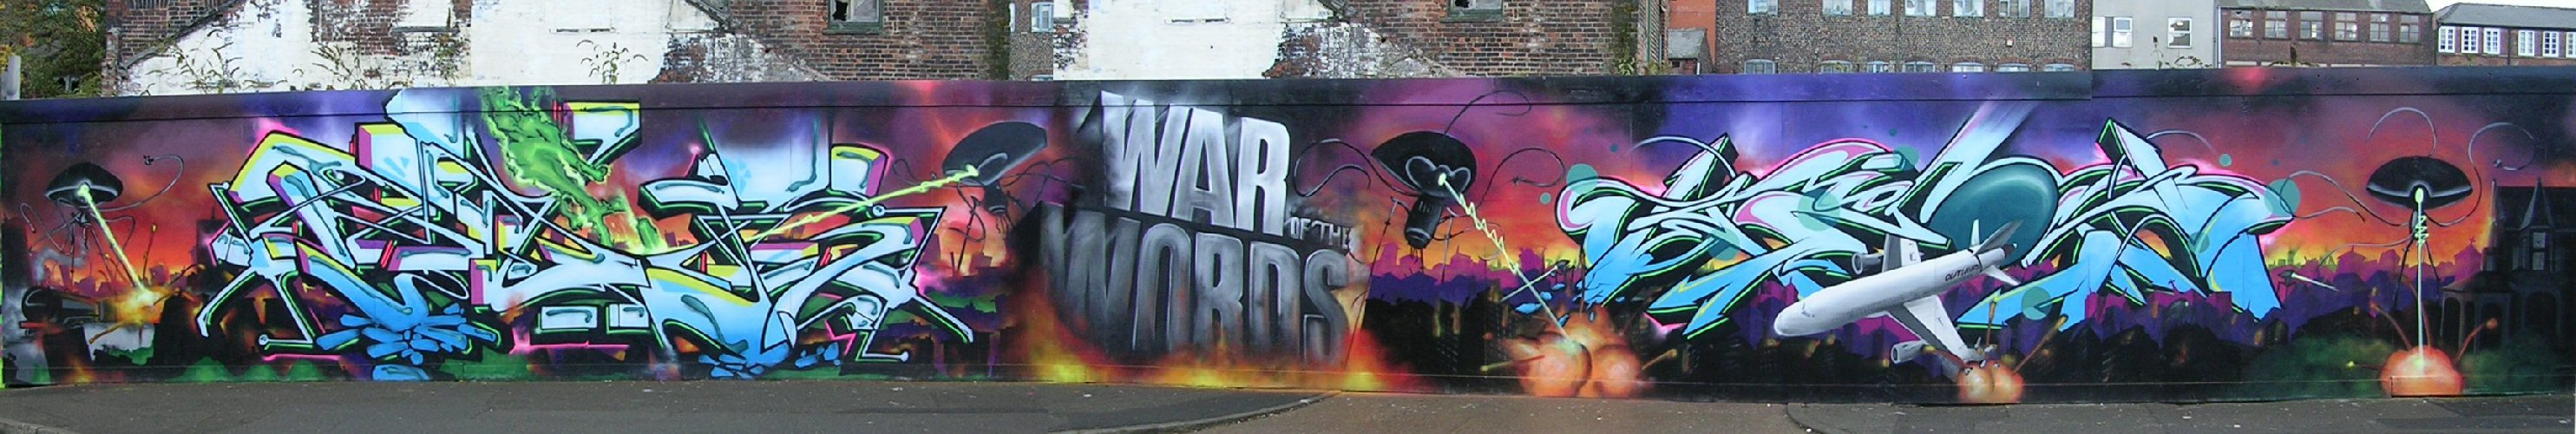 War of Words panorama 3/11/12